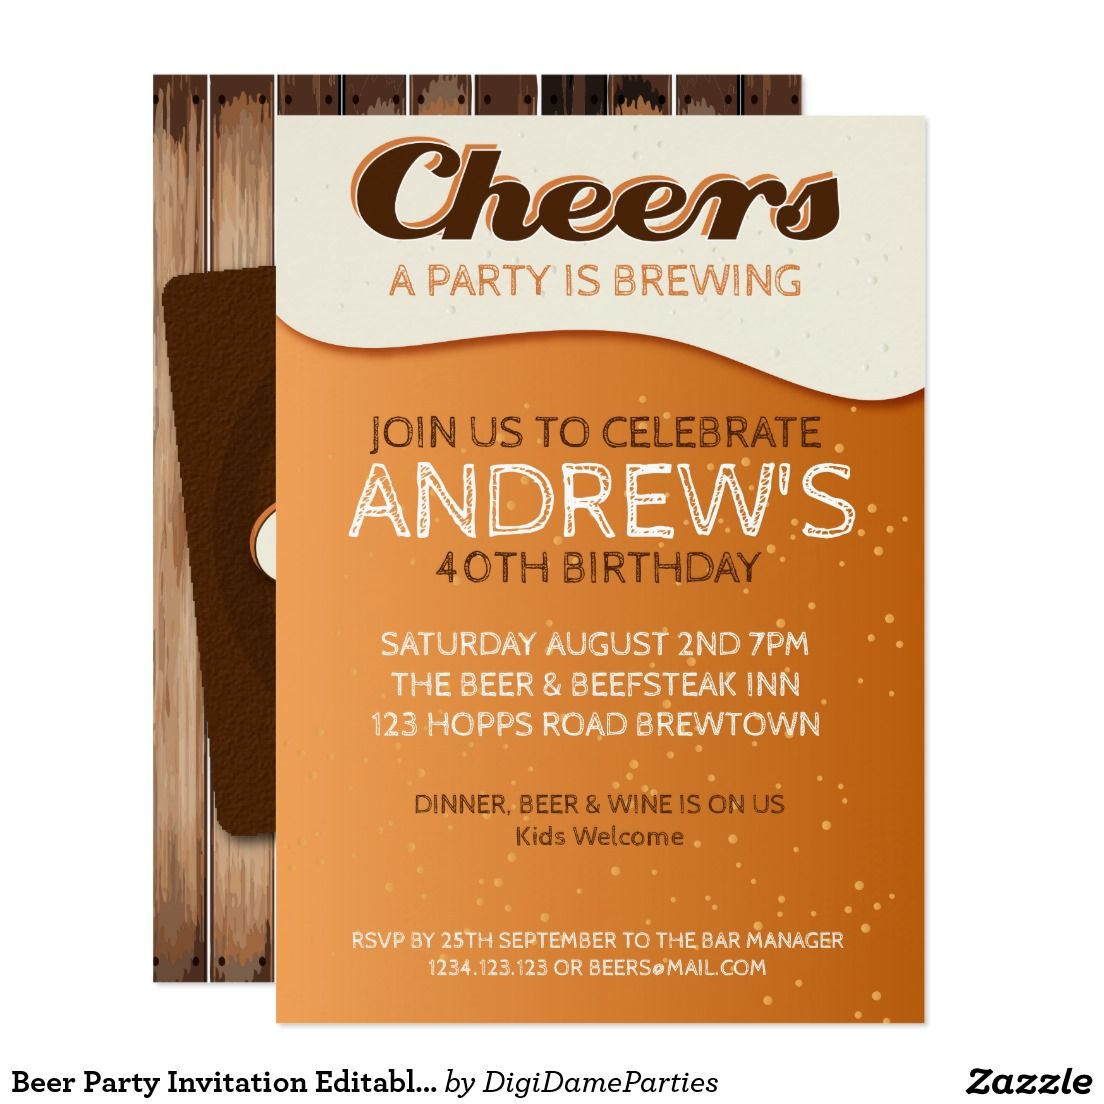 Beer Party Invitation Editable Template   Templates, Zazzle ...